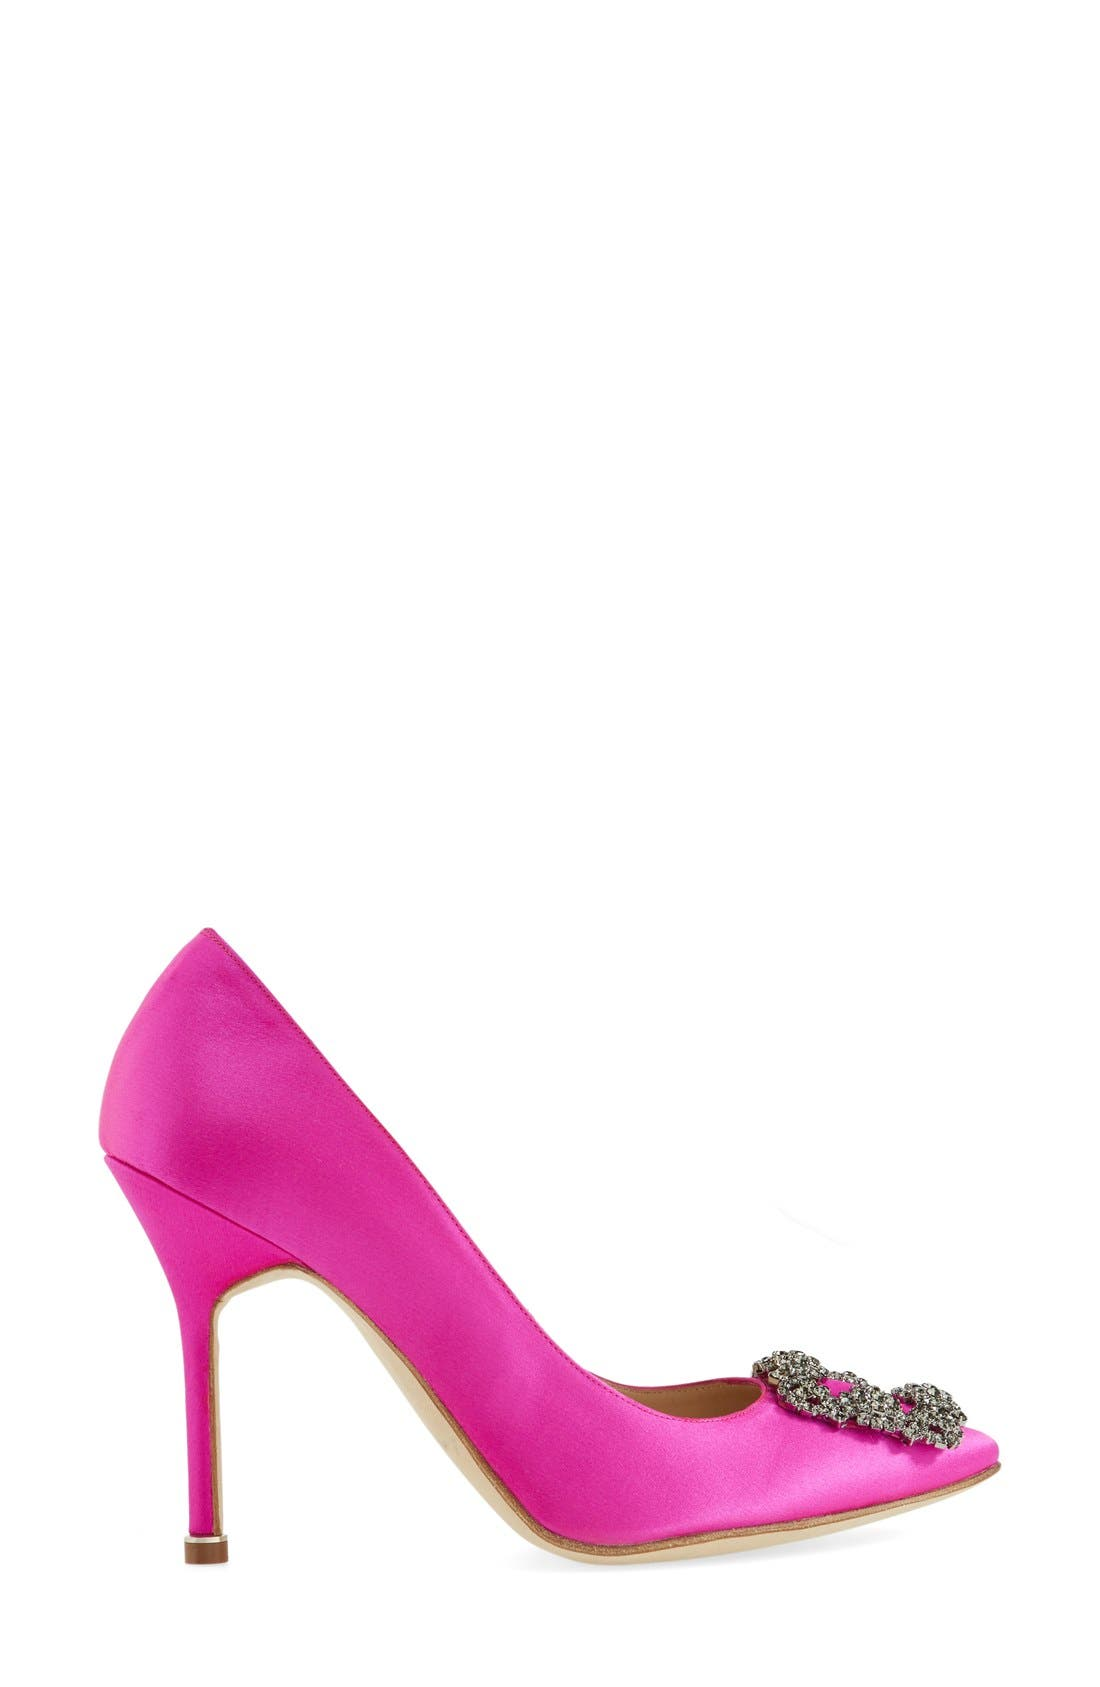 Alternate Image 4  - Manolo Blahnik 'Hangisi' Jewel Pump (Women)